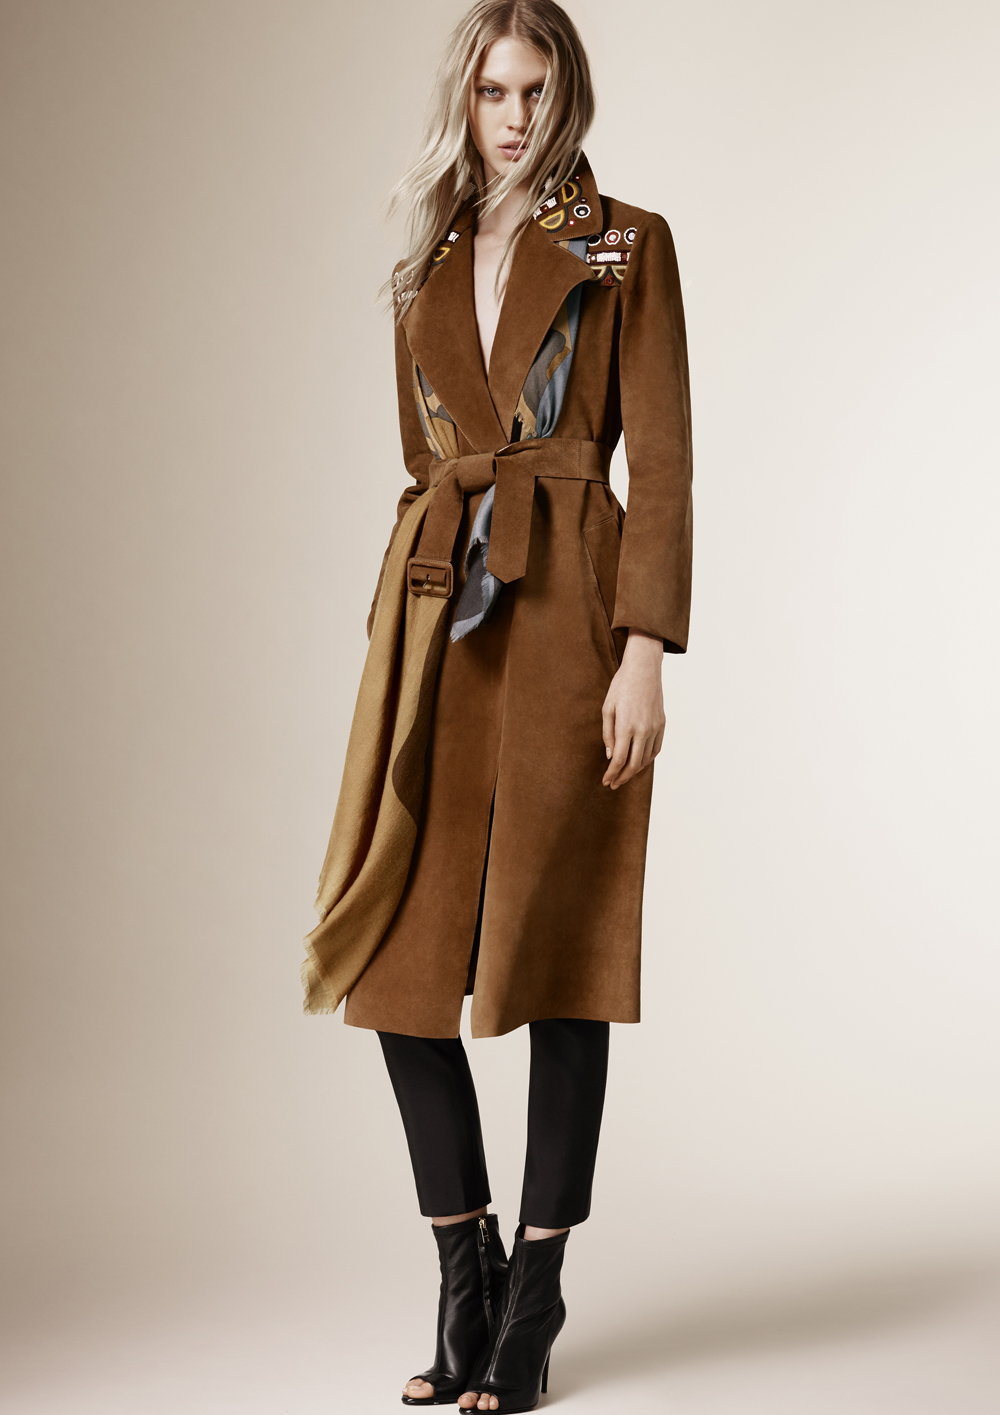 Burberry_Prorsum_Womenswear_Autumn_Winter_2015_Pre-Collection_01